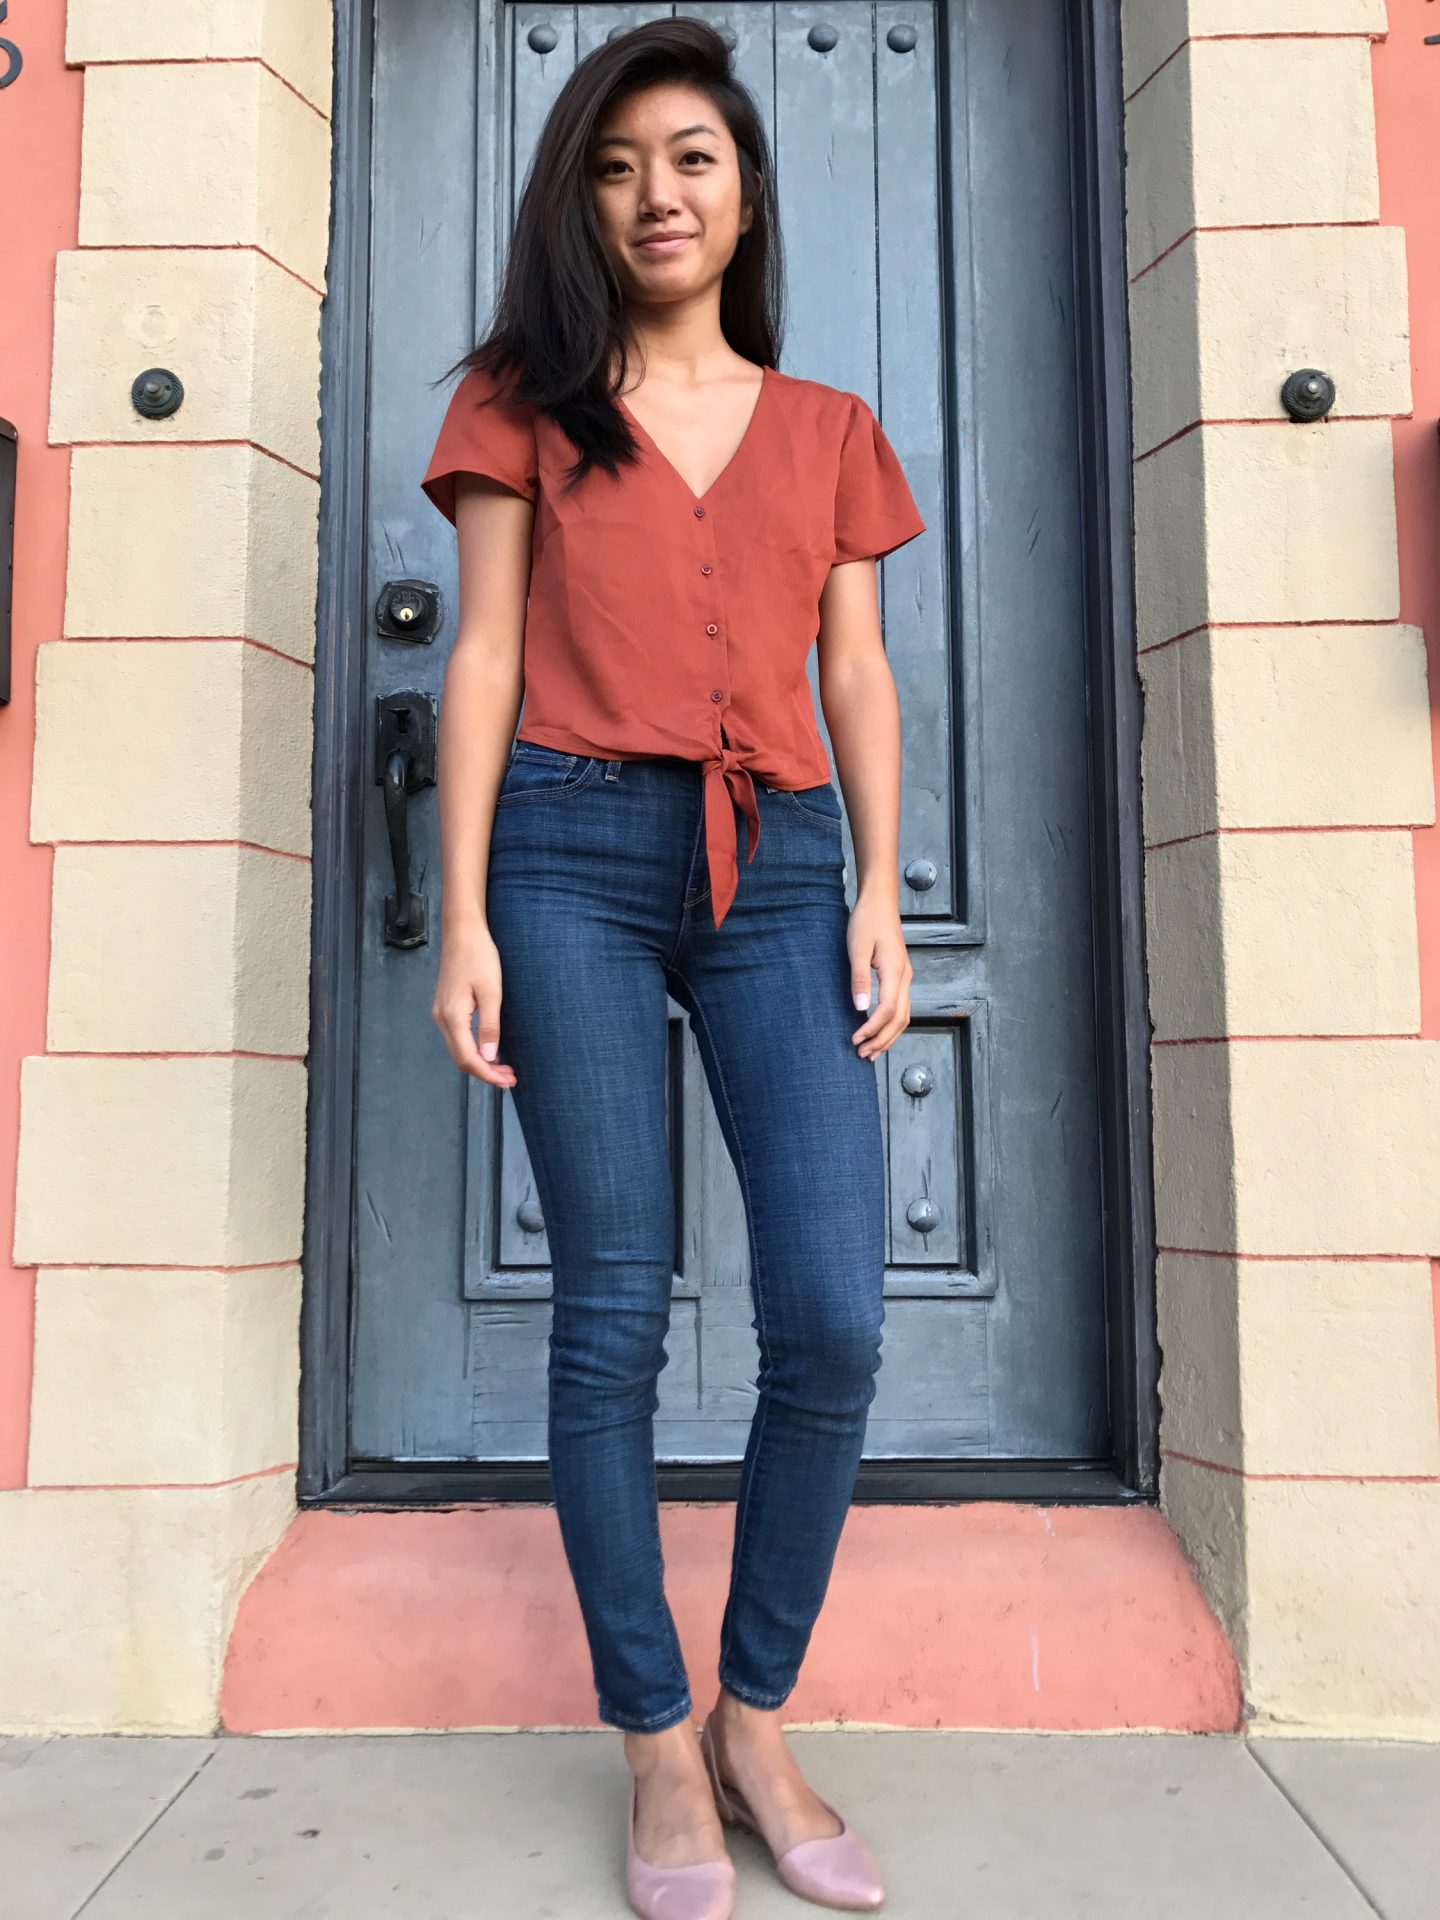 Looking for easy fall style? Los Angeles Lifestyle Blogger My Teacher Got Style is sharing her favorite easy fall style here!